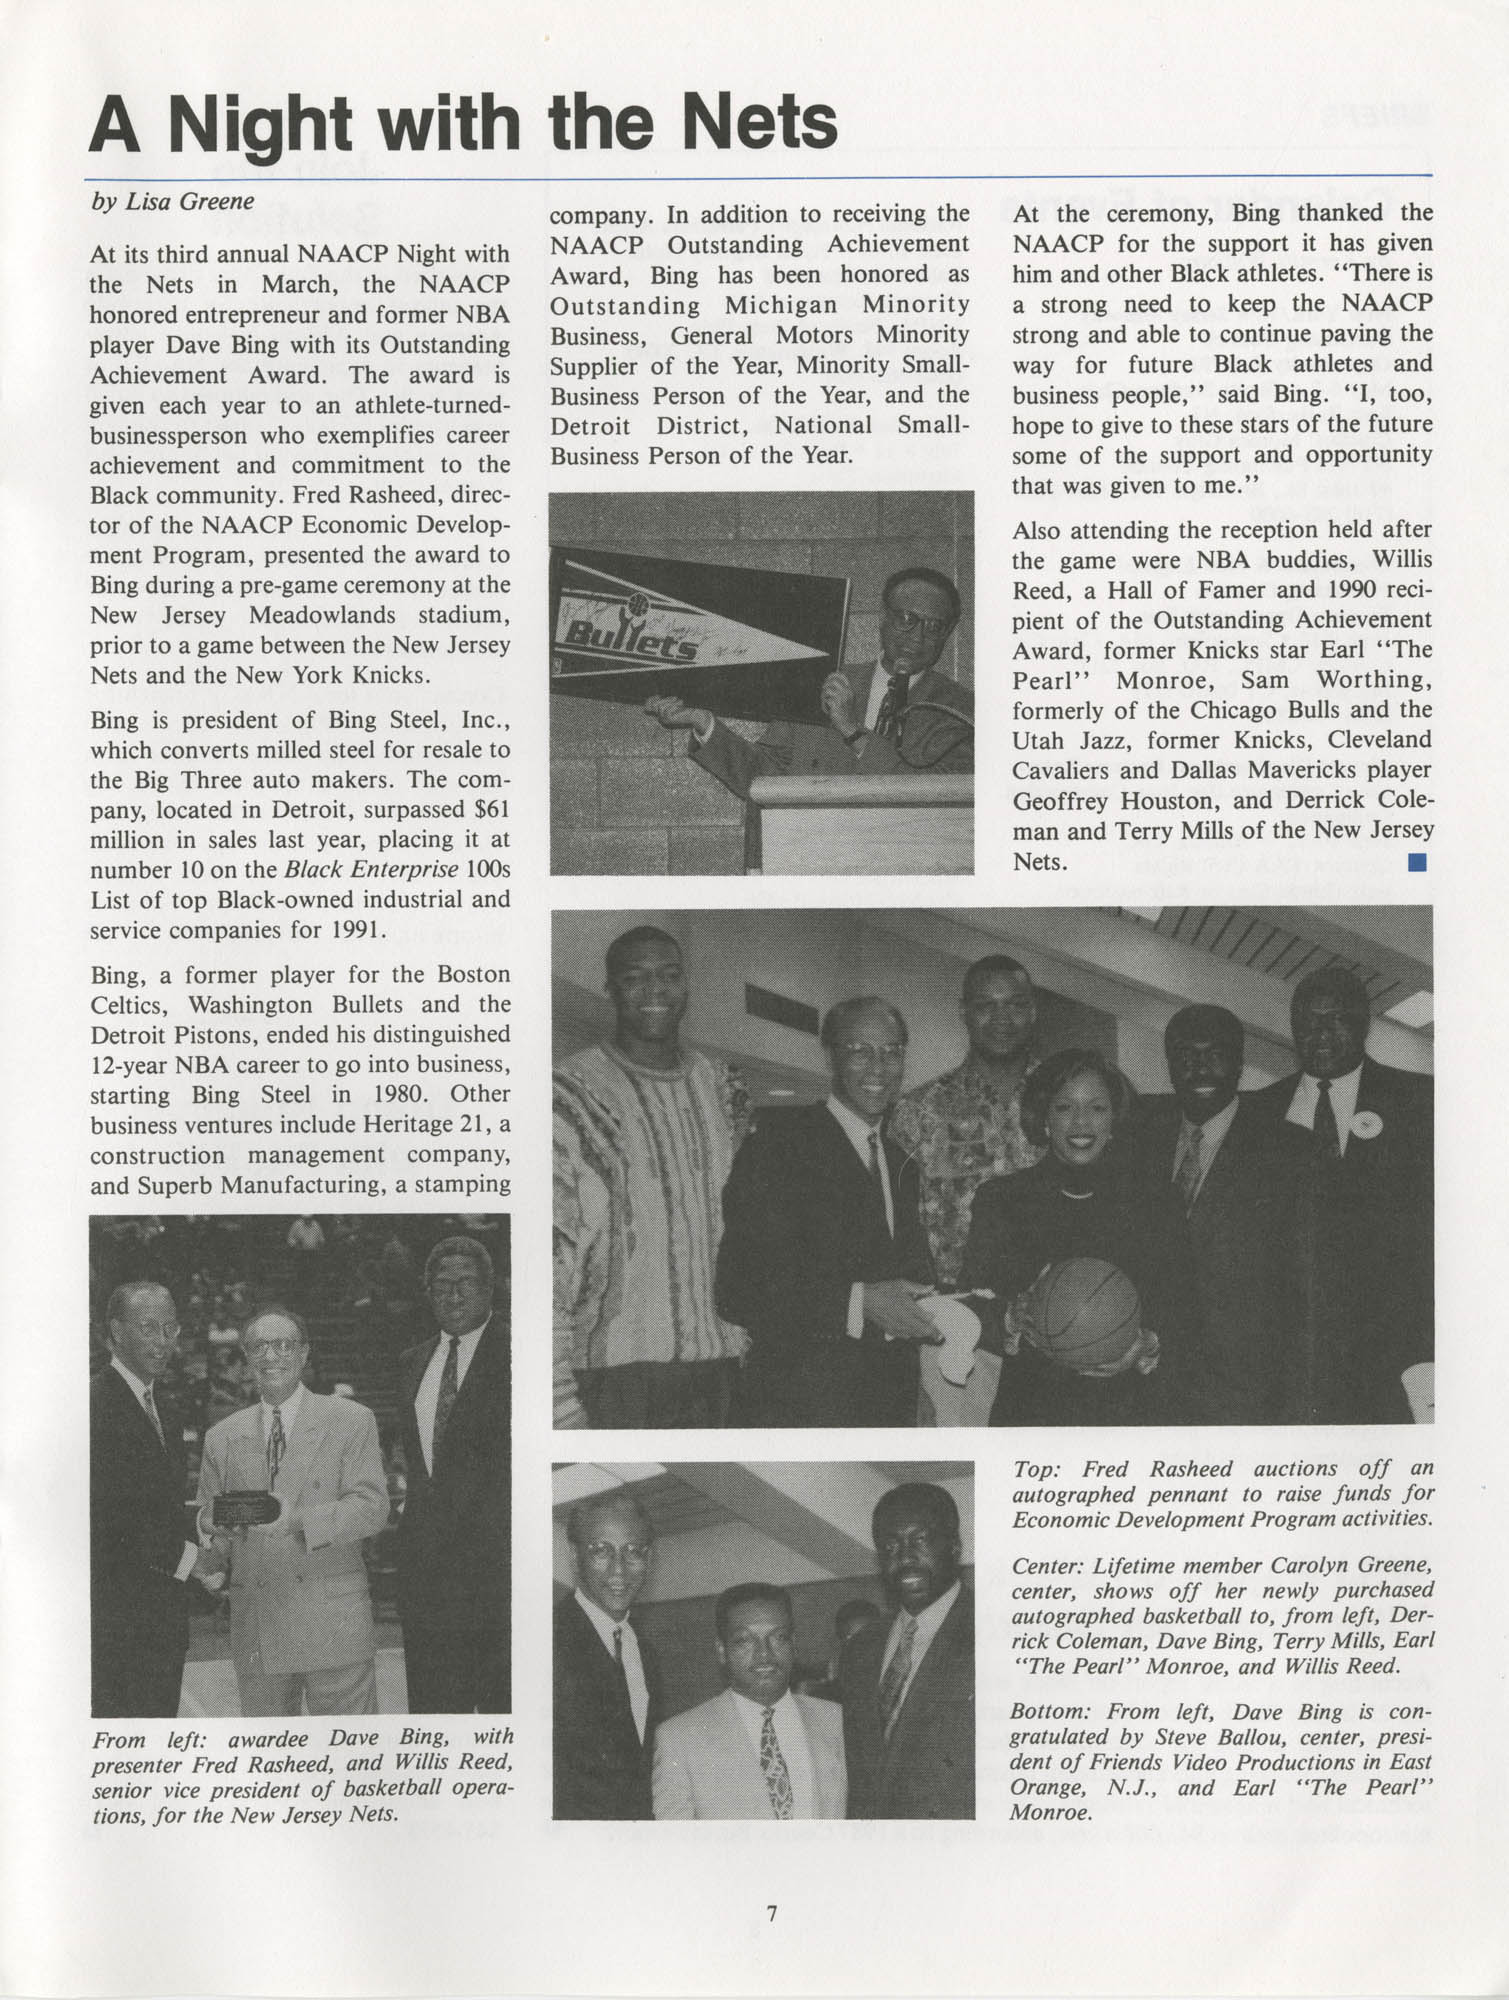 NAACP Commerce and Trade Council Economic Report, Vol. 1, No. 2, Spring 1992, Page 7